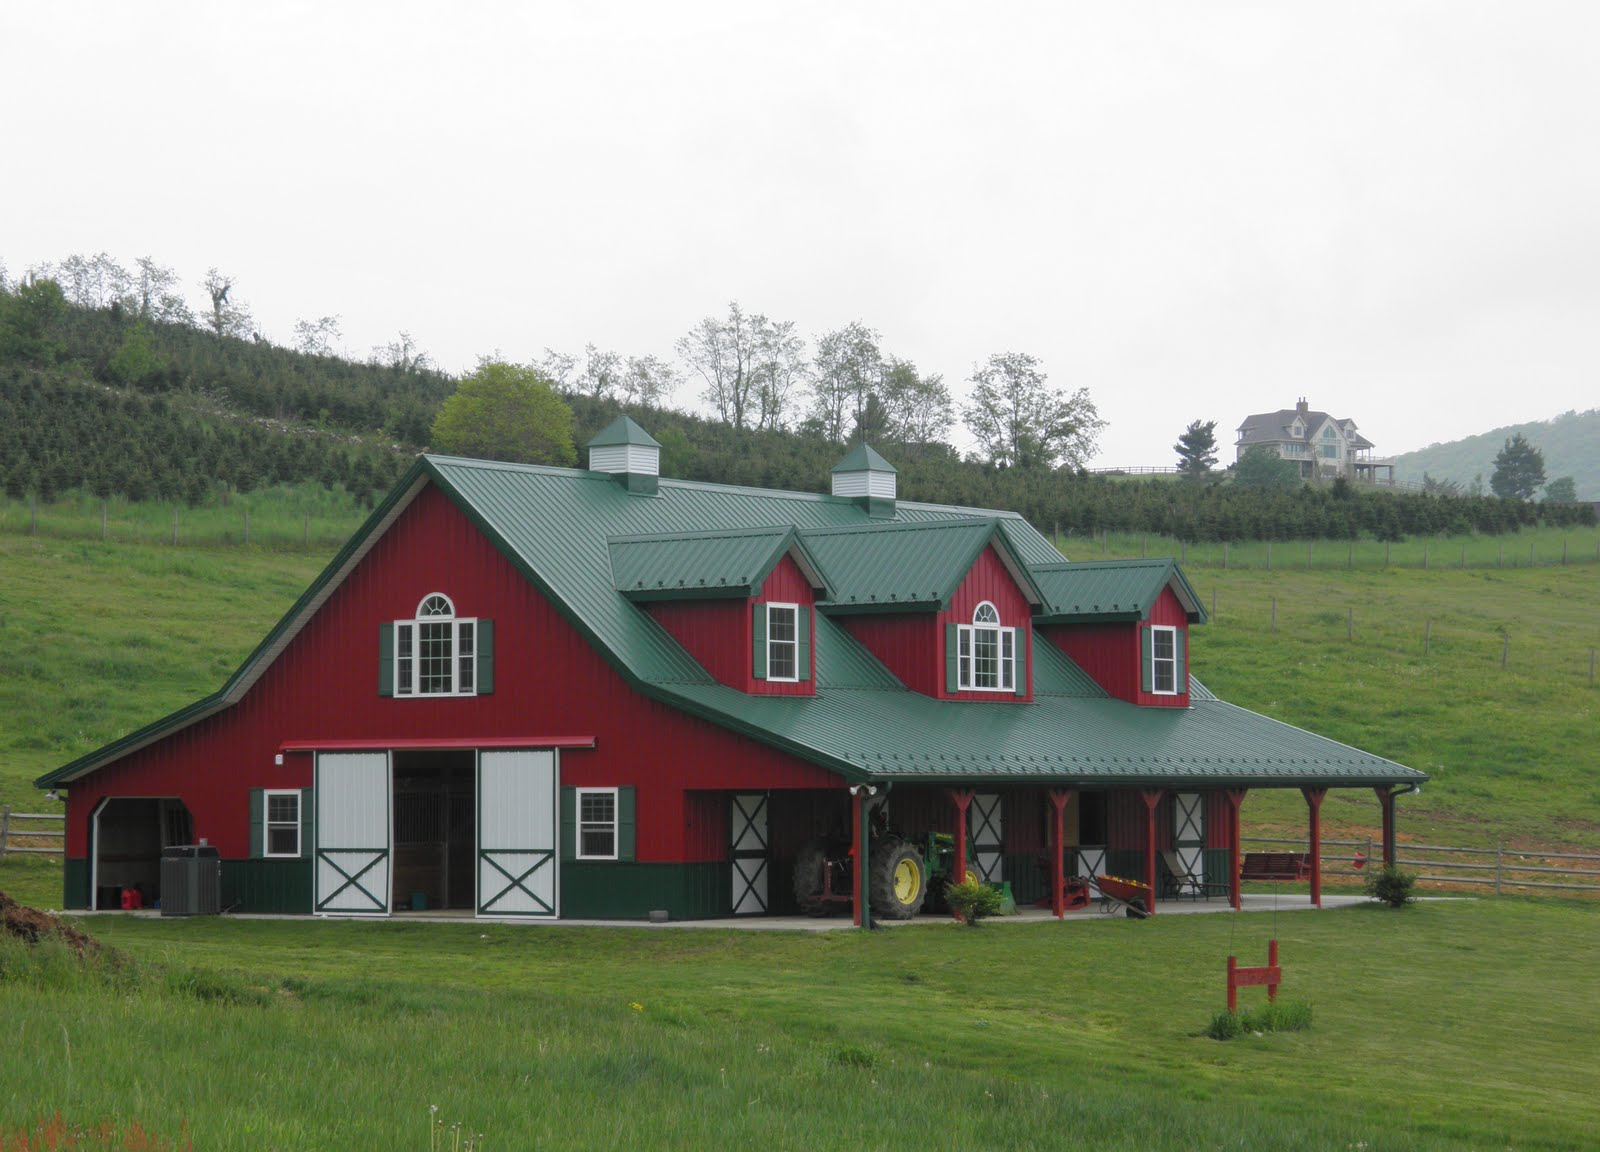 Barnhouse on pinterest barndominium barn houses and for Sheds and barns